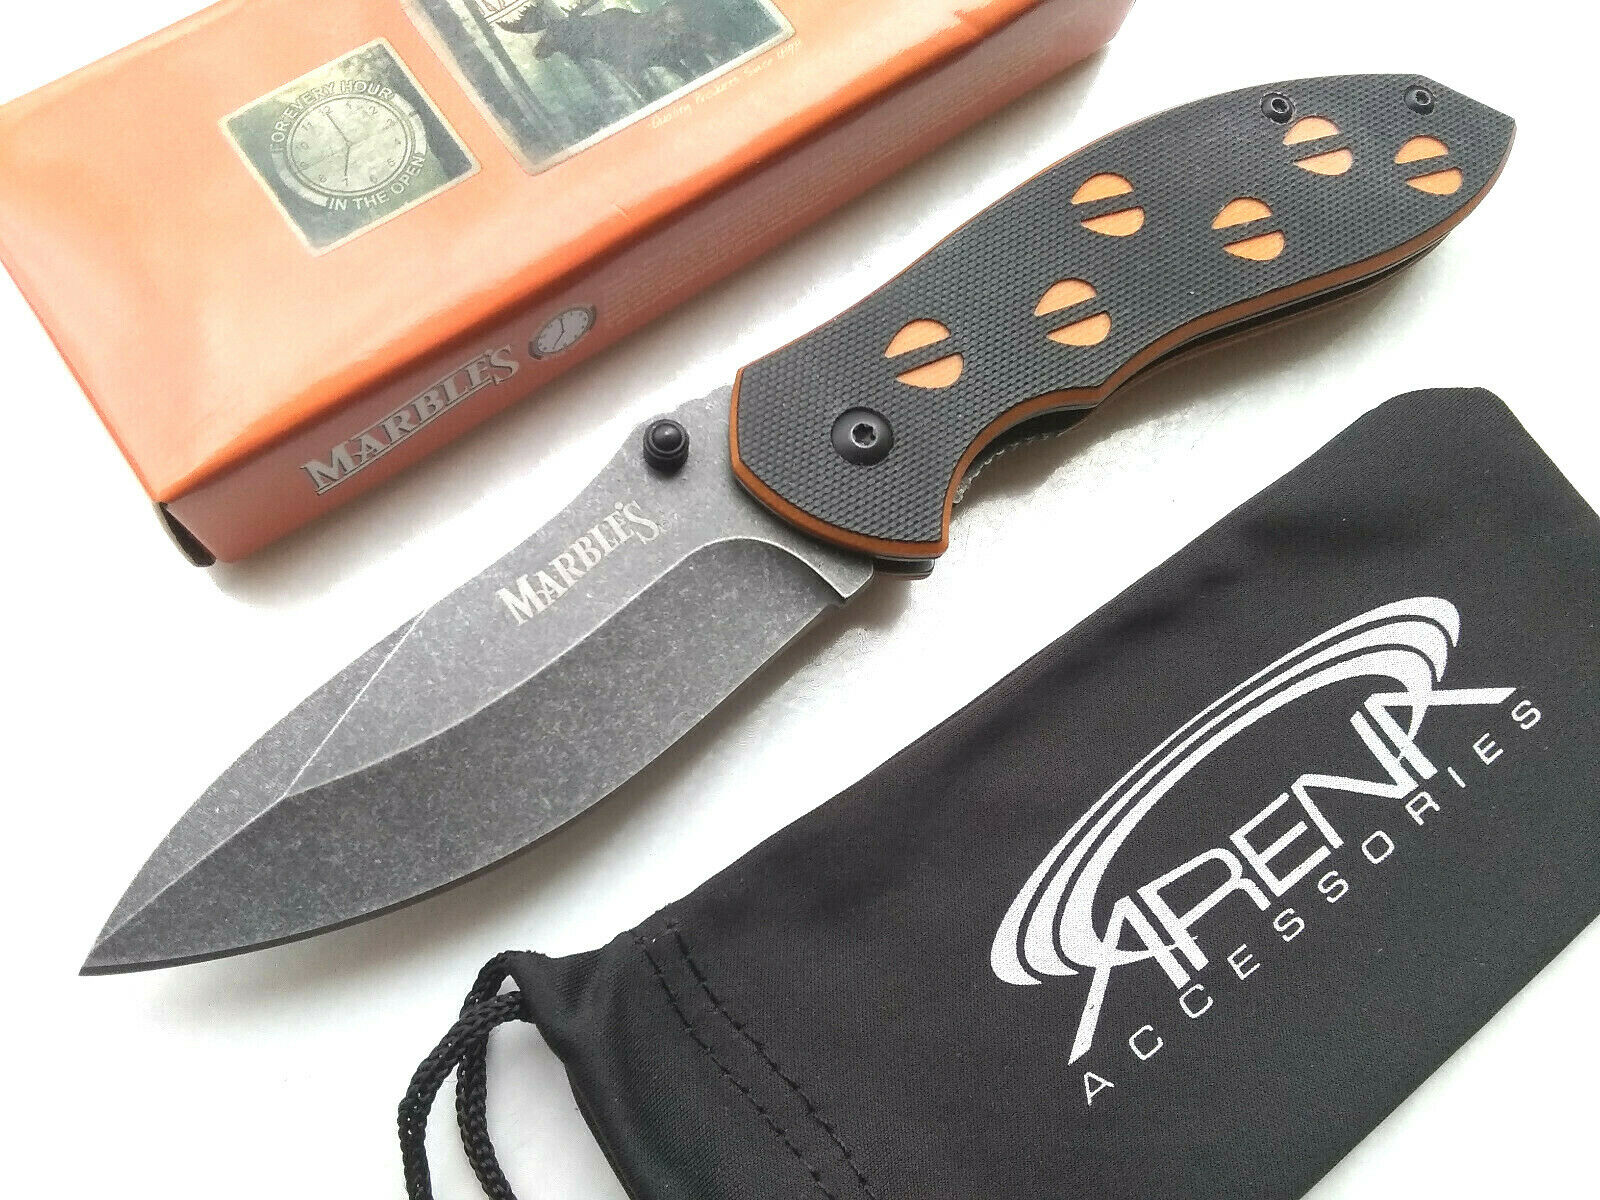 Marble's Orange & Black G10 Spring Assisted Pocket Knife EDC Deer Cutout Tracks Stonewashed Blade